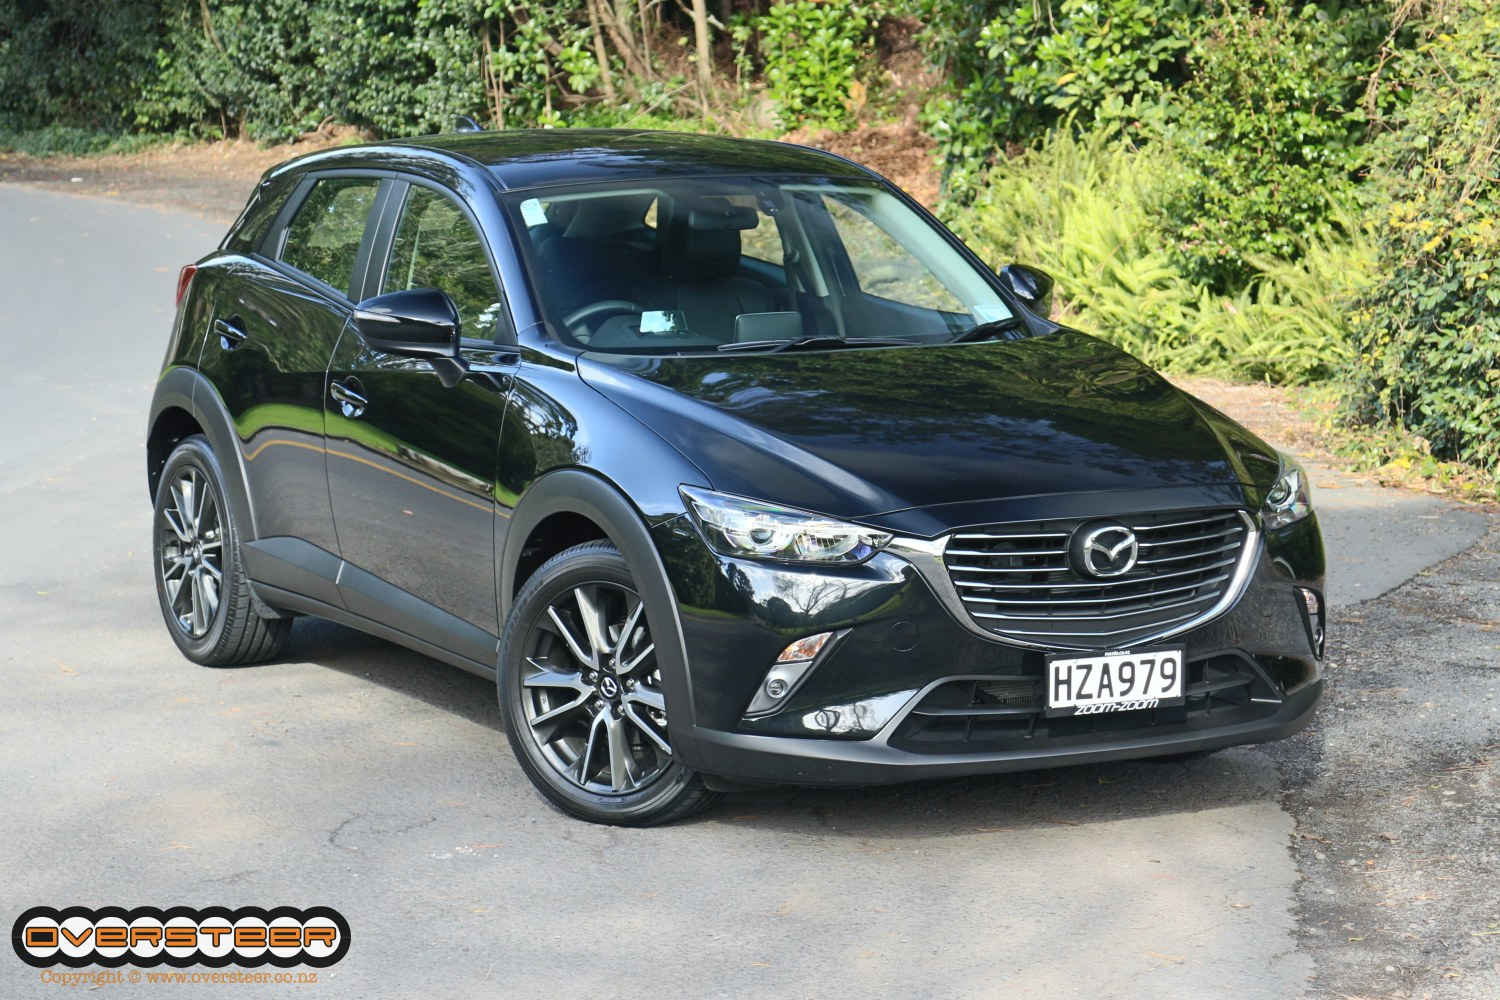 road test: mazda cx-3 gsx - oversteer